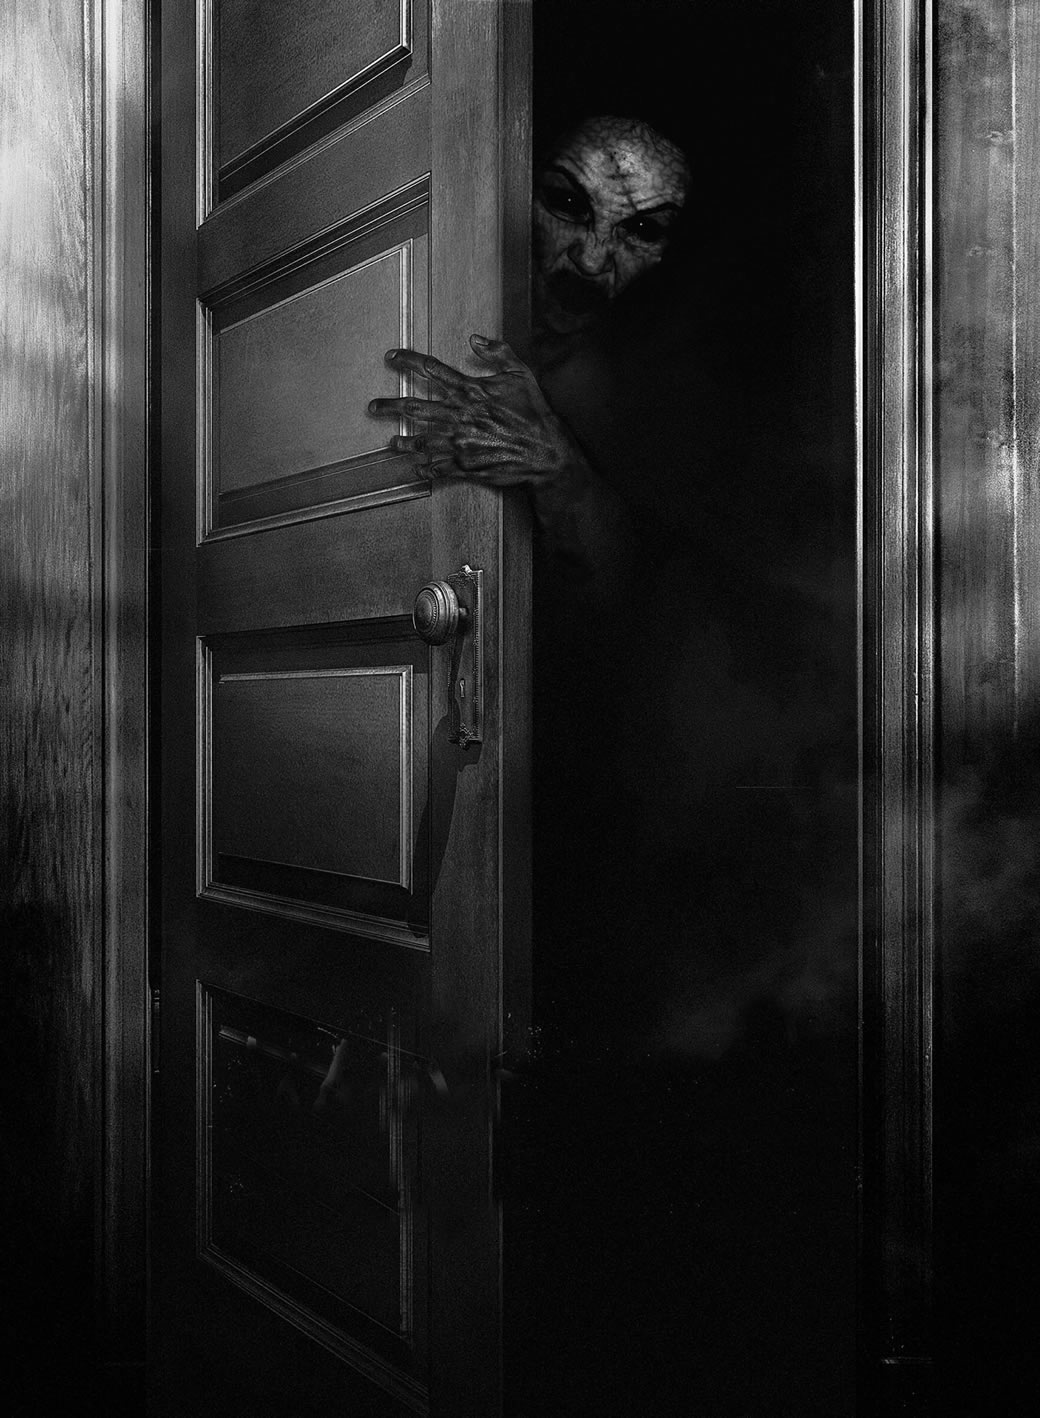 The Scary Closet—Customers Caught in Real Nightmare